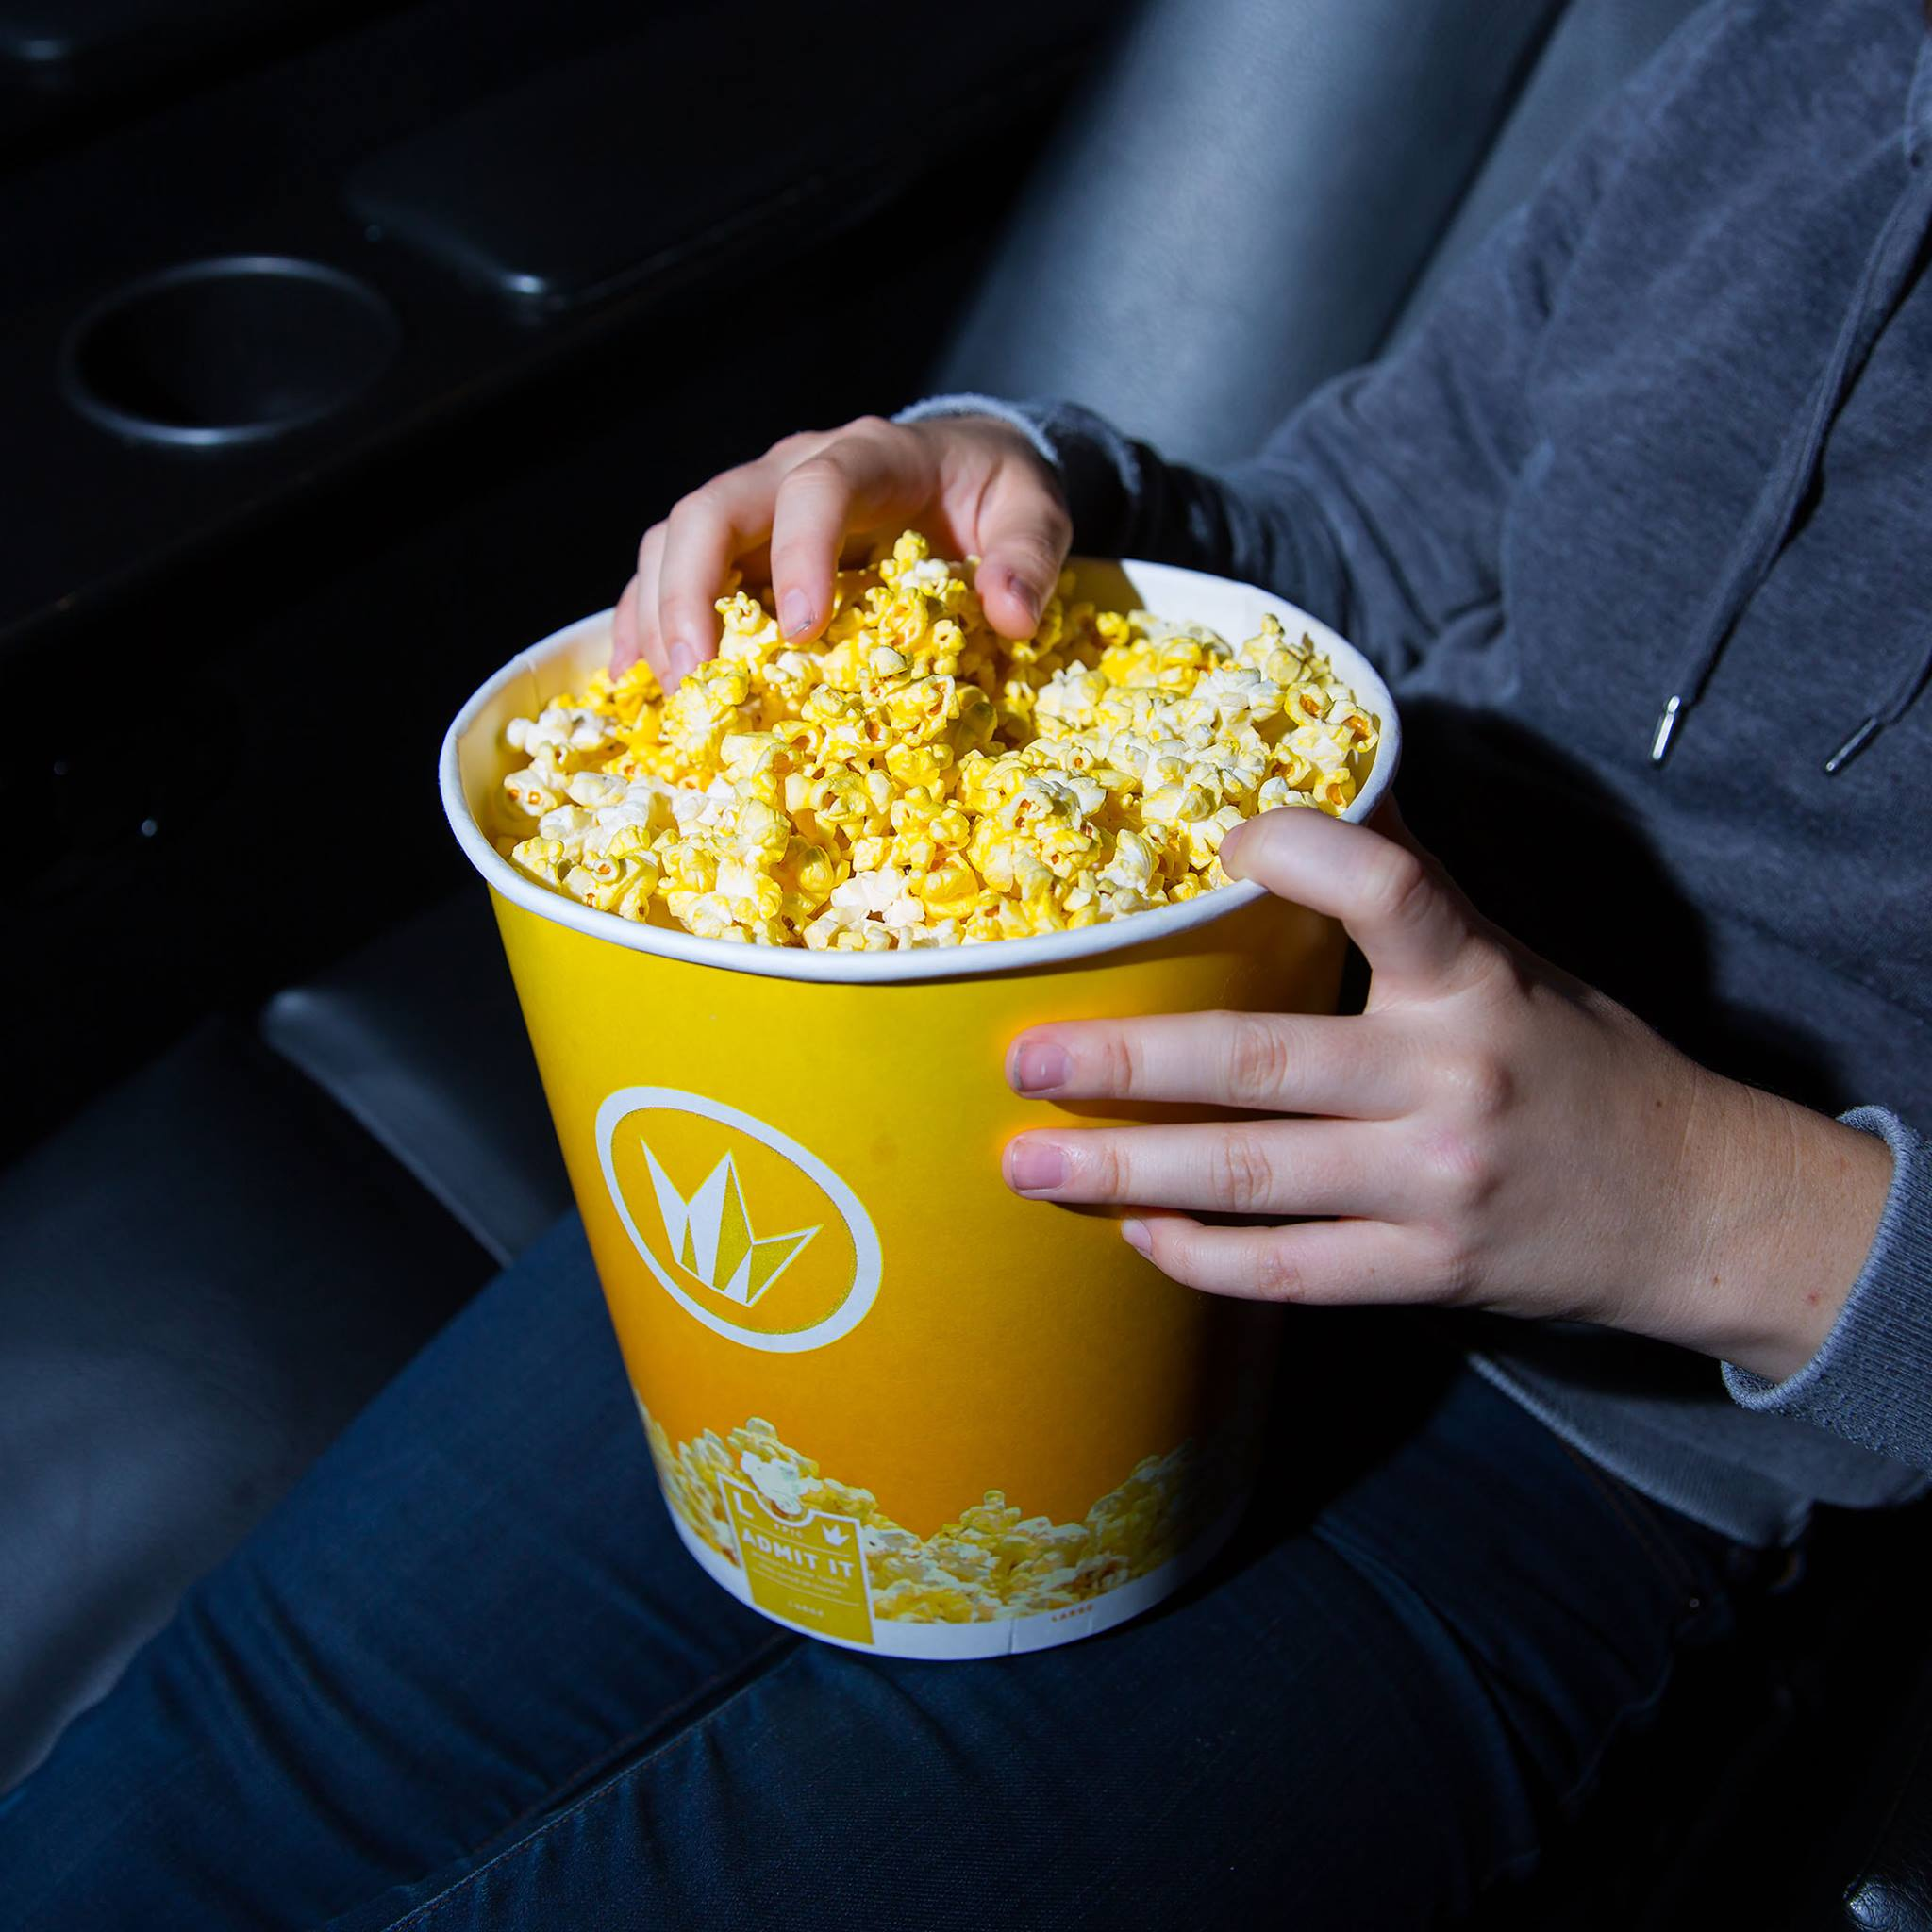 22 college student discounts & freebies – a moviegoer holding popcorn